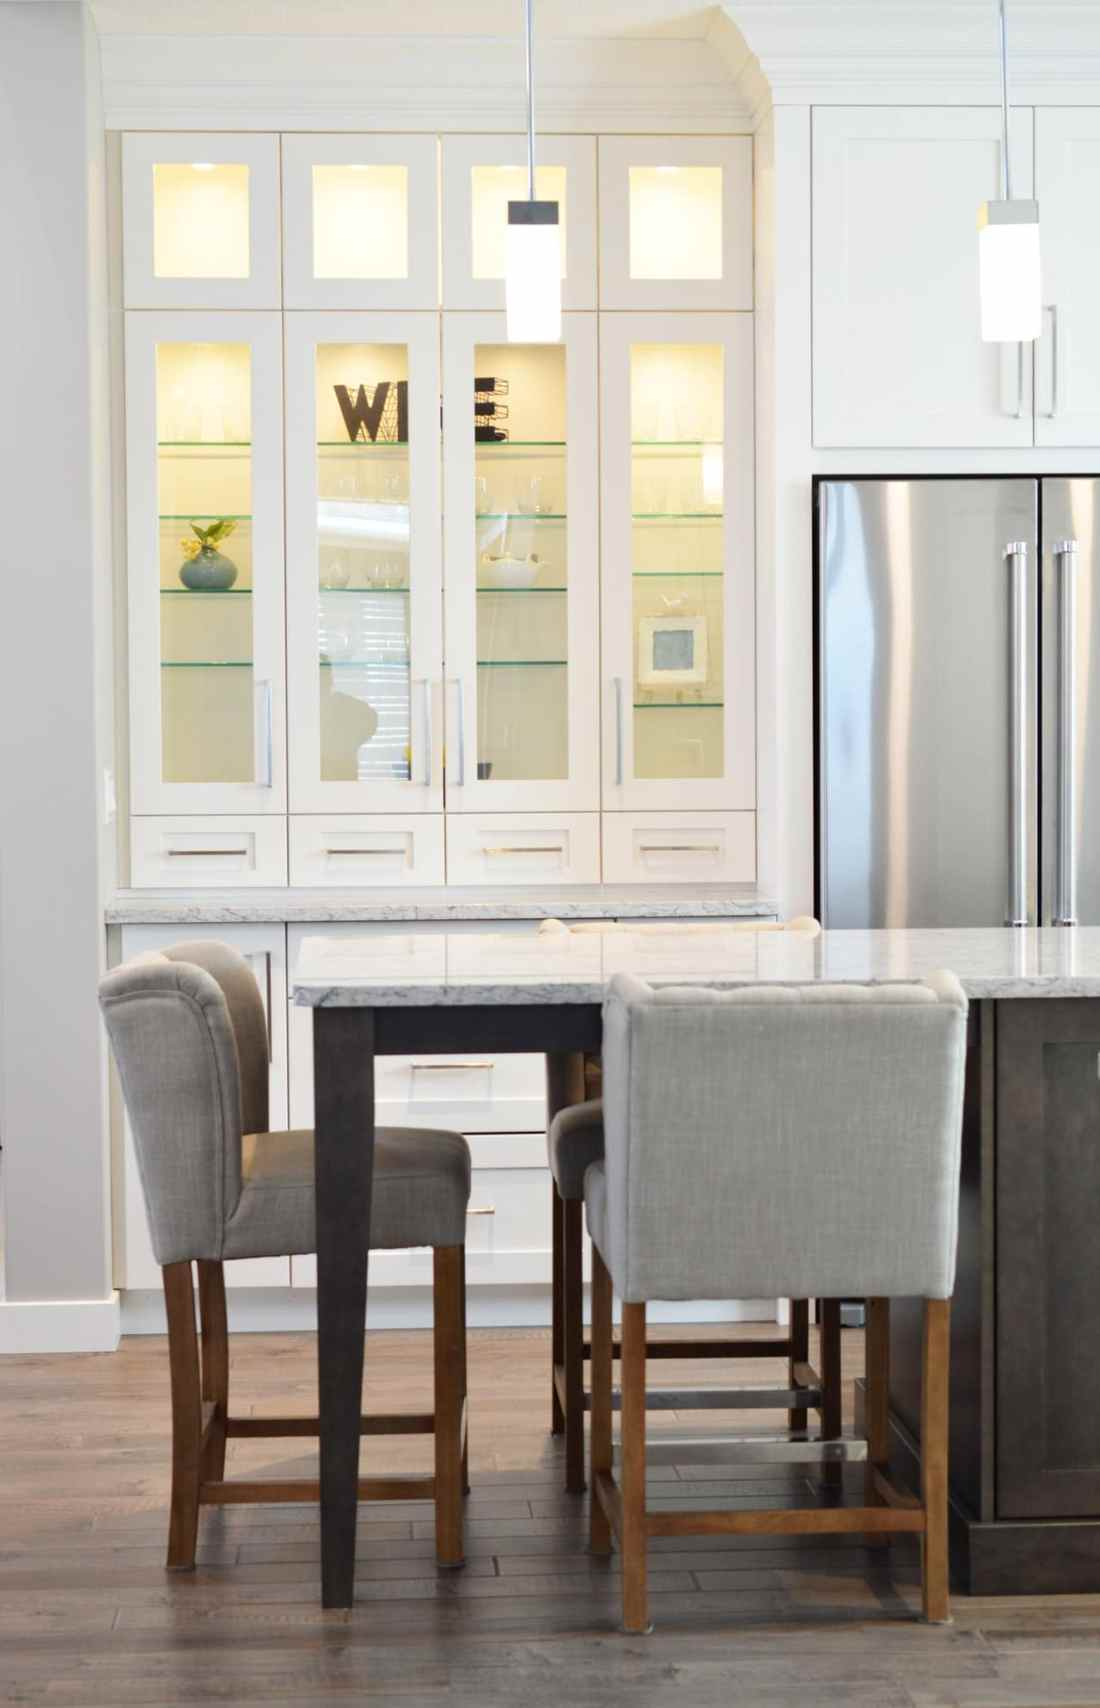 DIY Dos and Don'ts When Remodeling Your Home